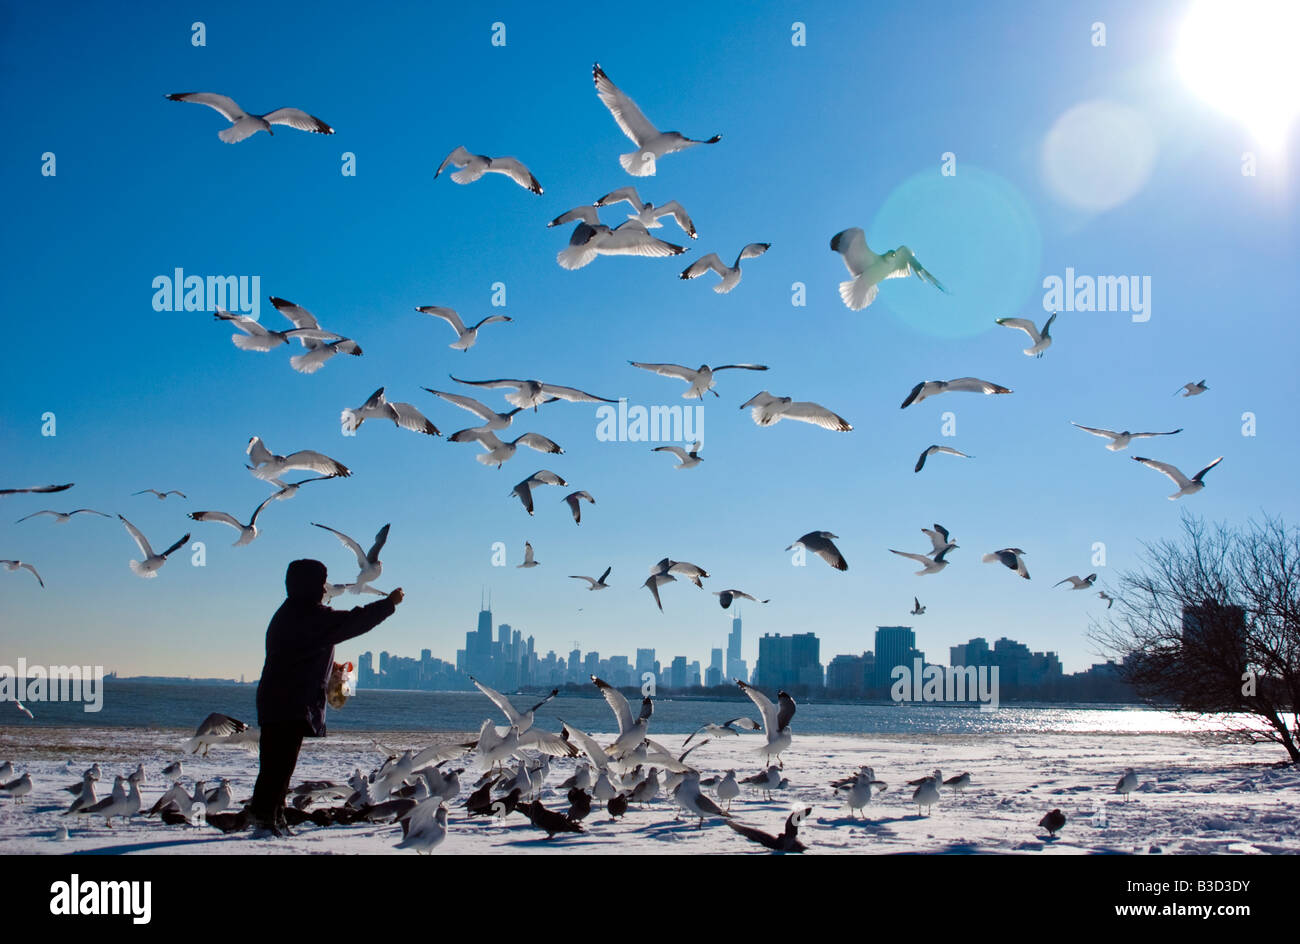 Man feeding seagulls by sea with cityscape in background - Stock Image